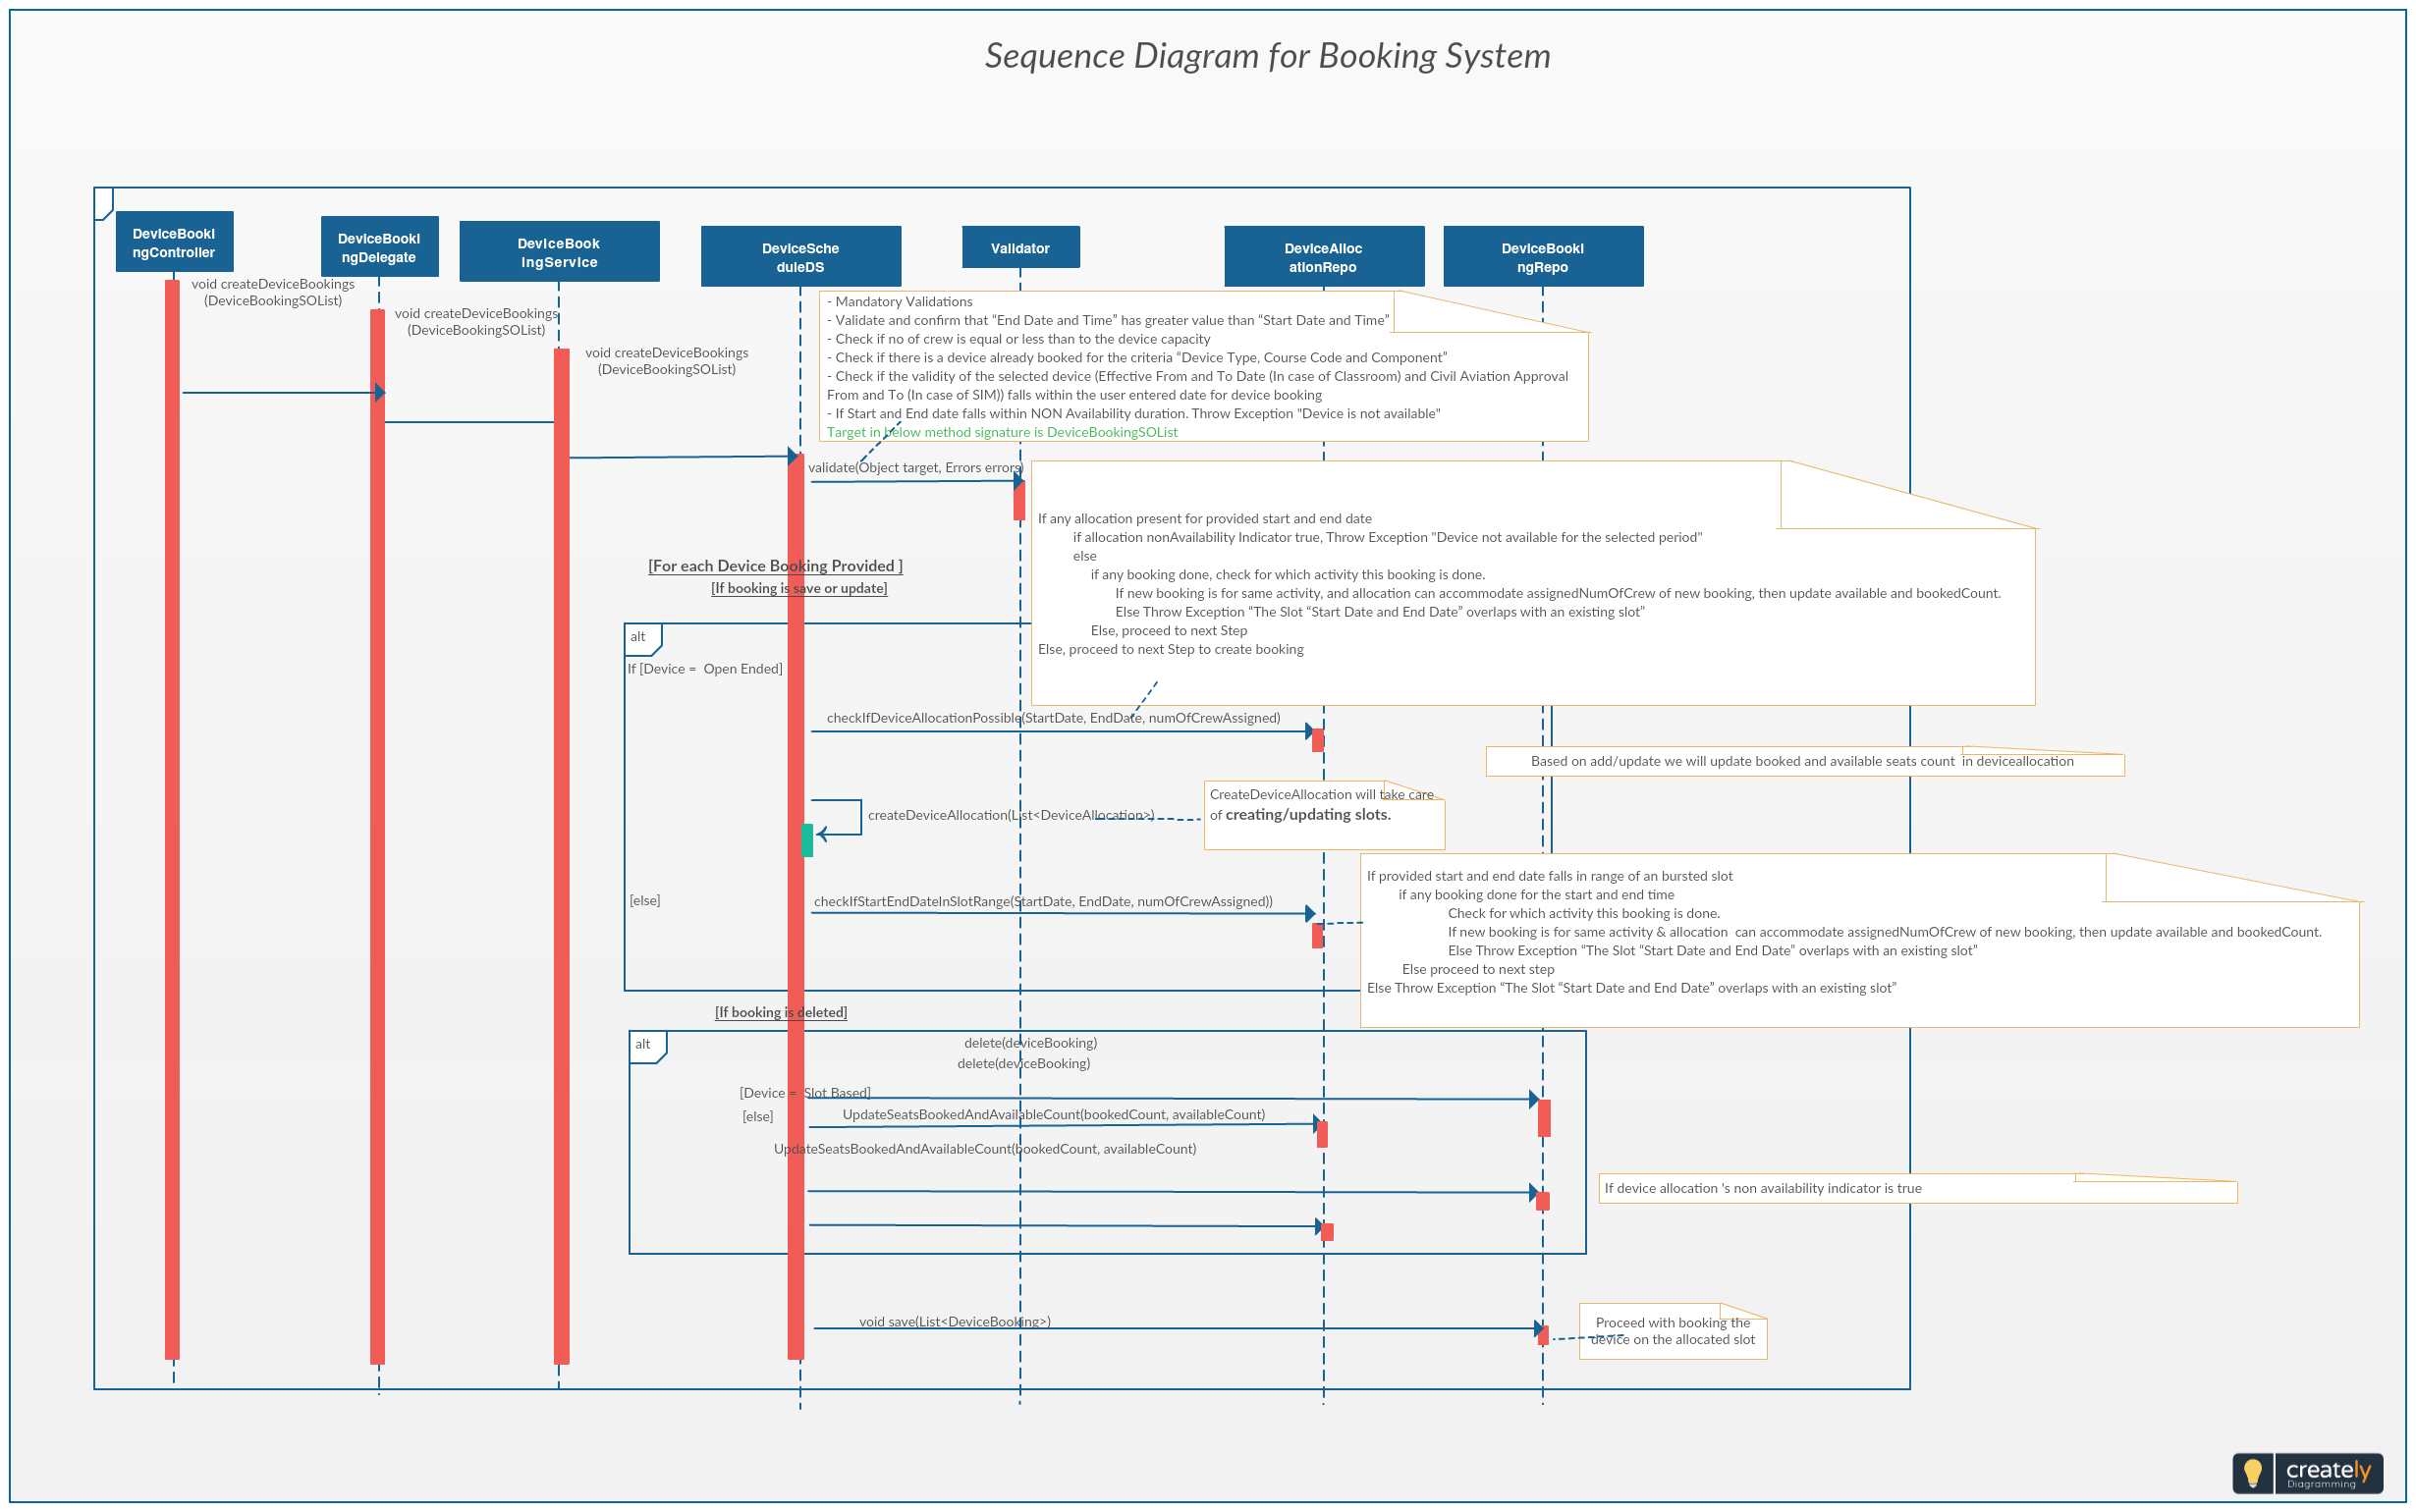 Booking System Sequence Diagram The Diagrams Show An Example Of Objects Interaction In Time Sequence In A Bookin Sequence Diagram Diagram Powerpoint Templates